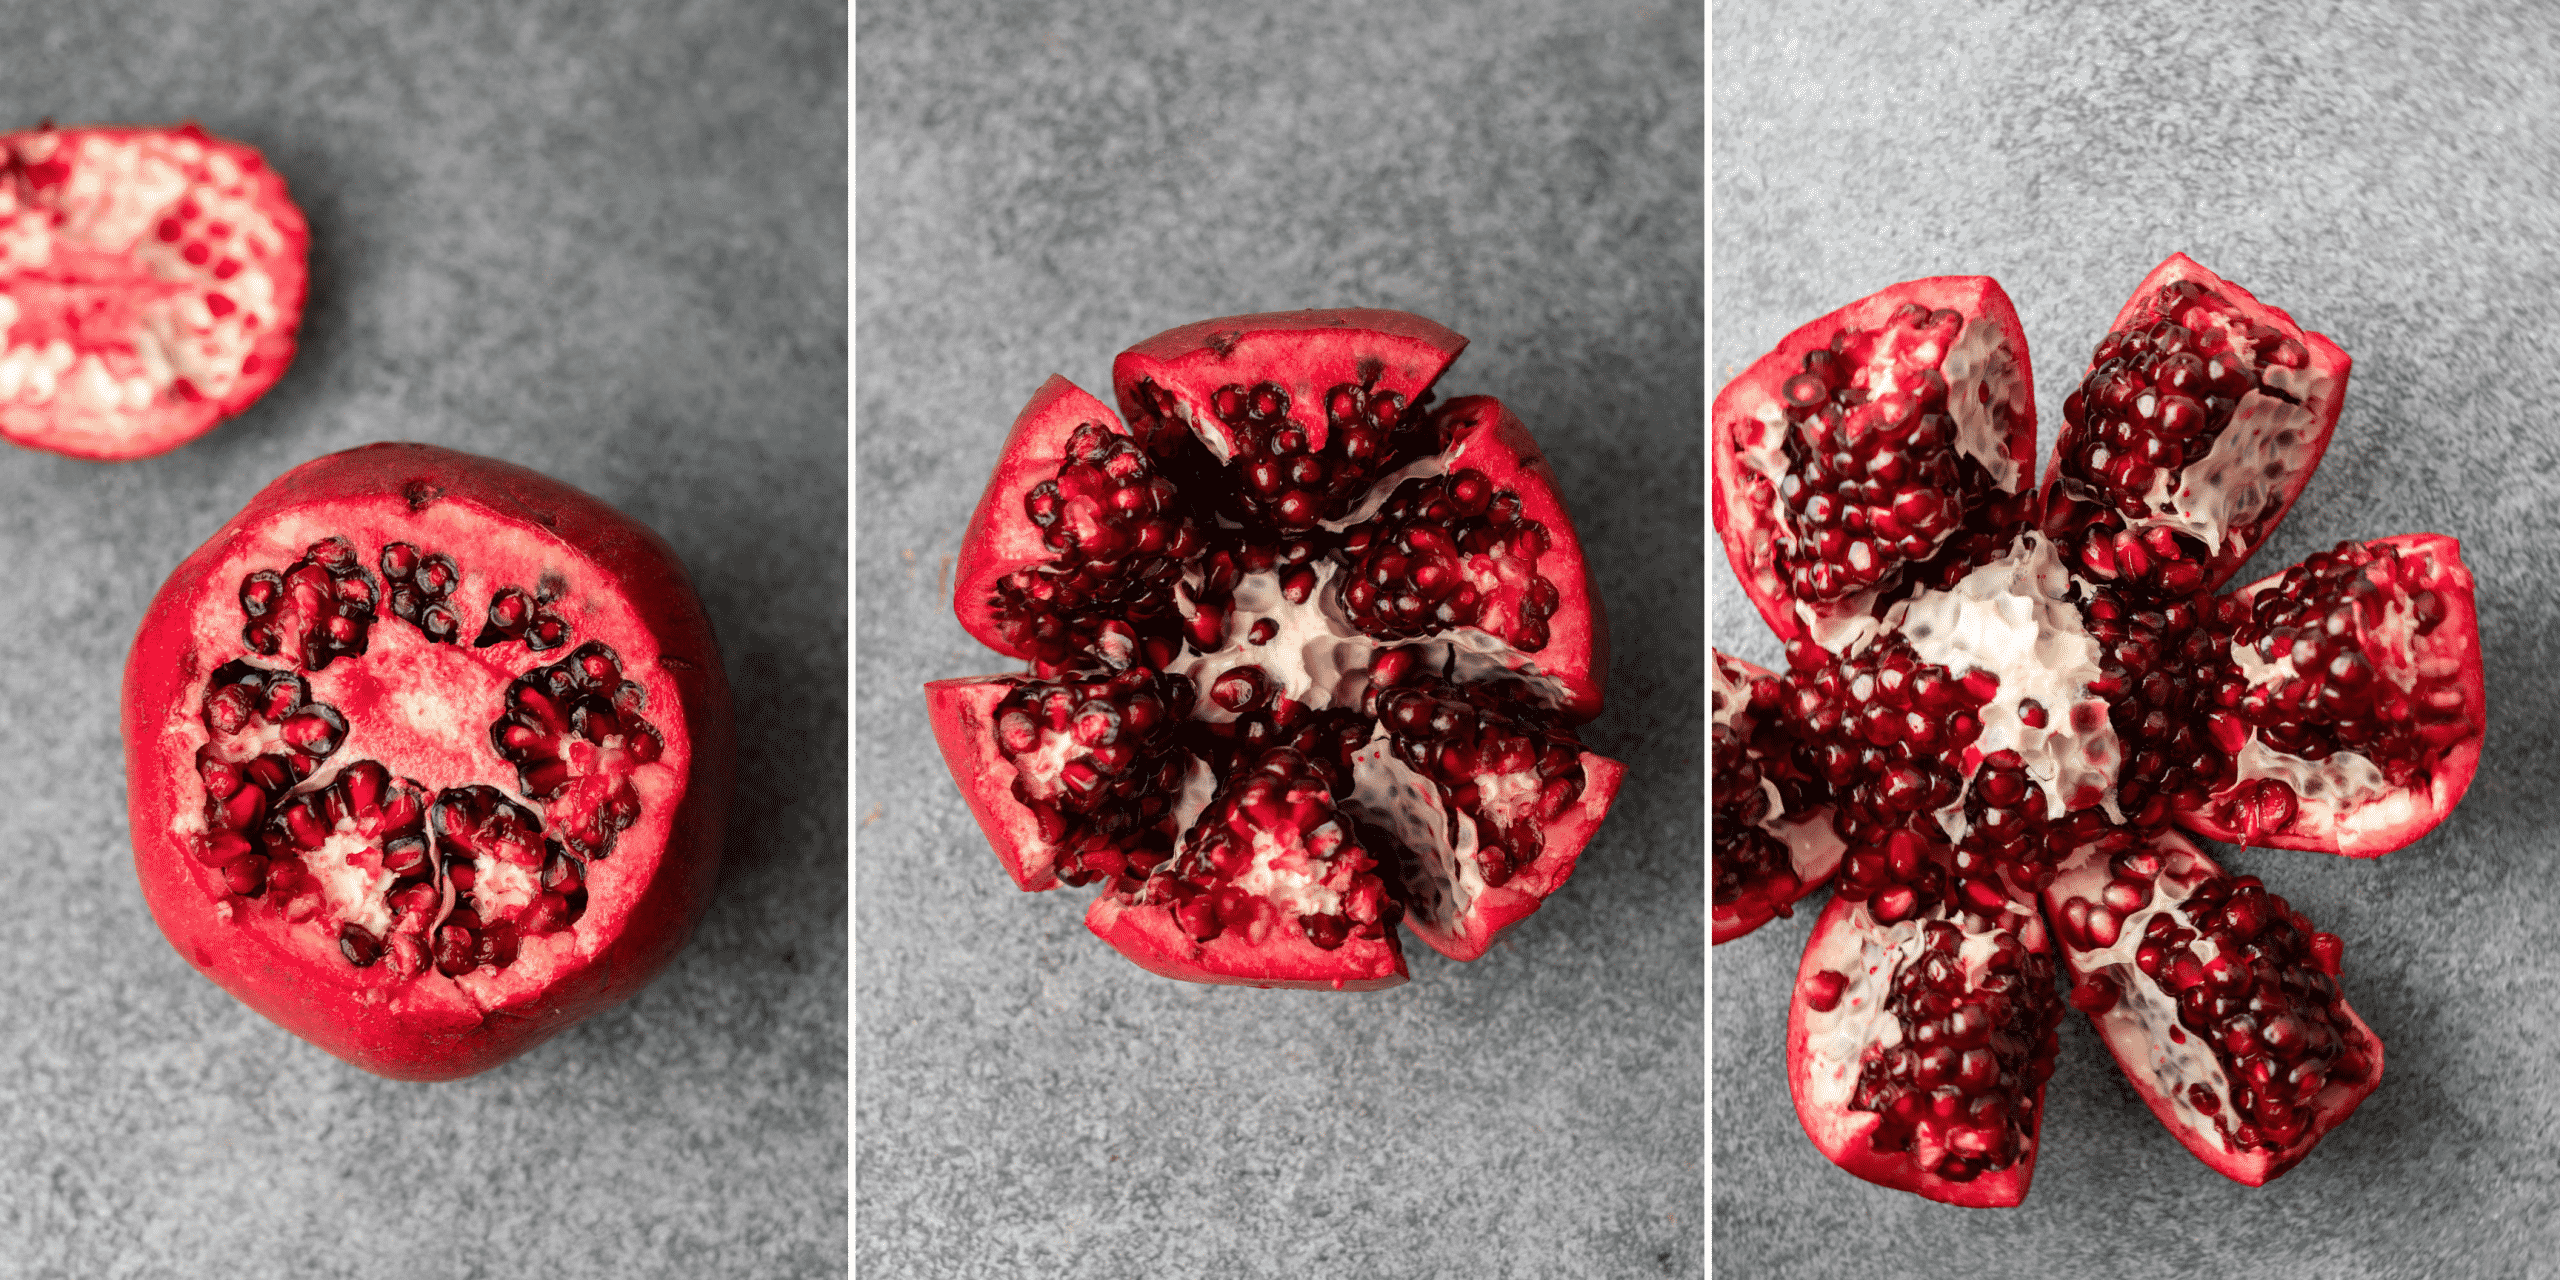 Collage of cutting a pomegranate into slices to deseed